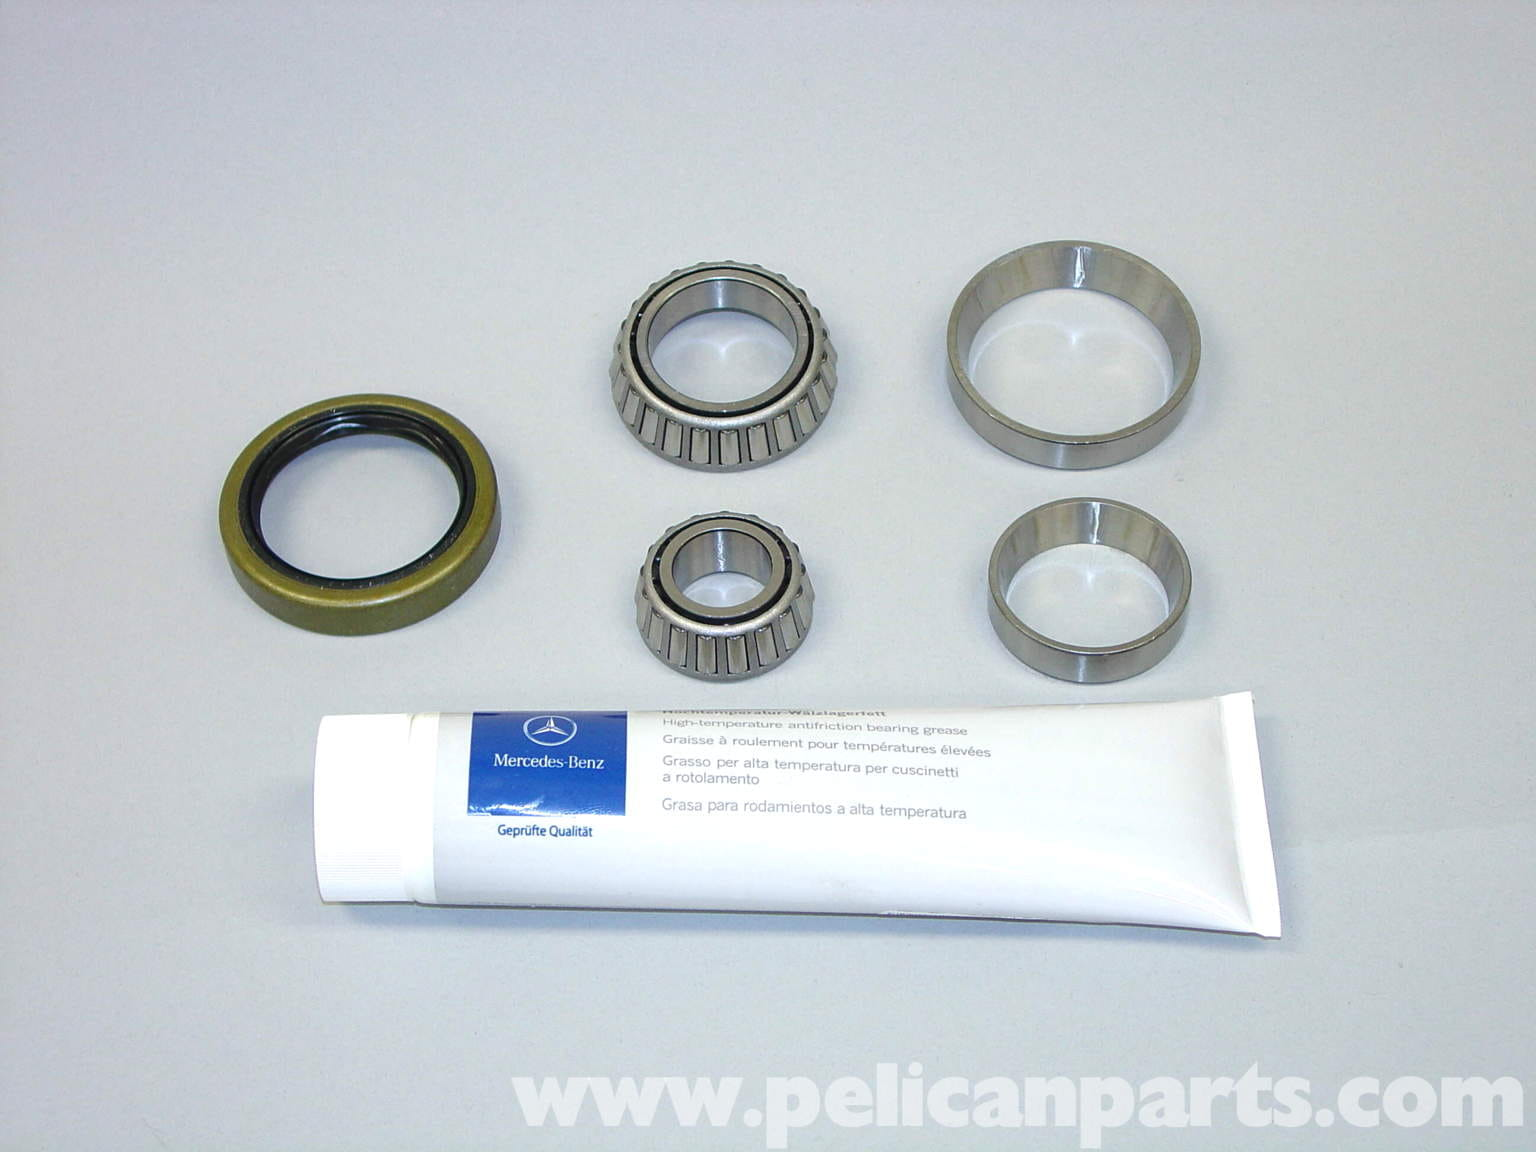 wheel bearing grease specifically for mercedes benz large image